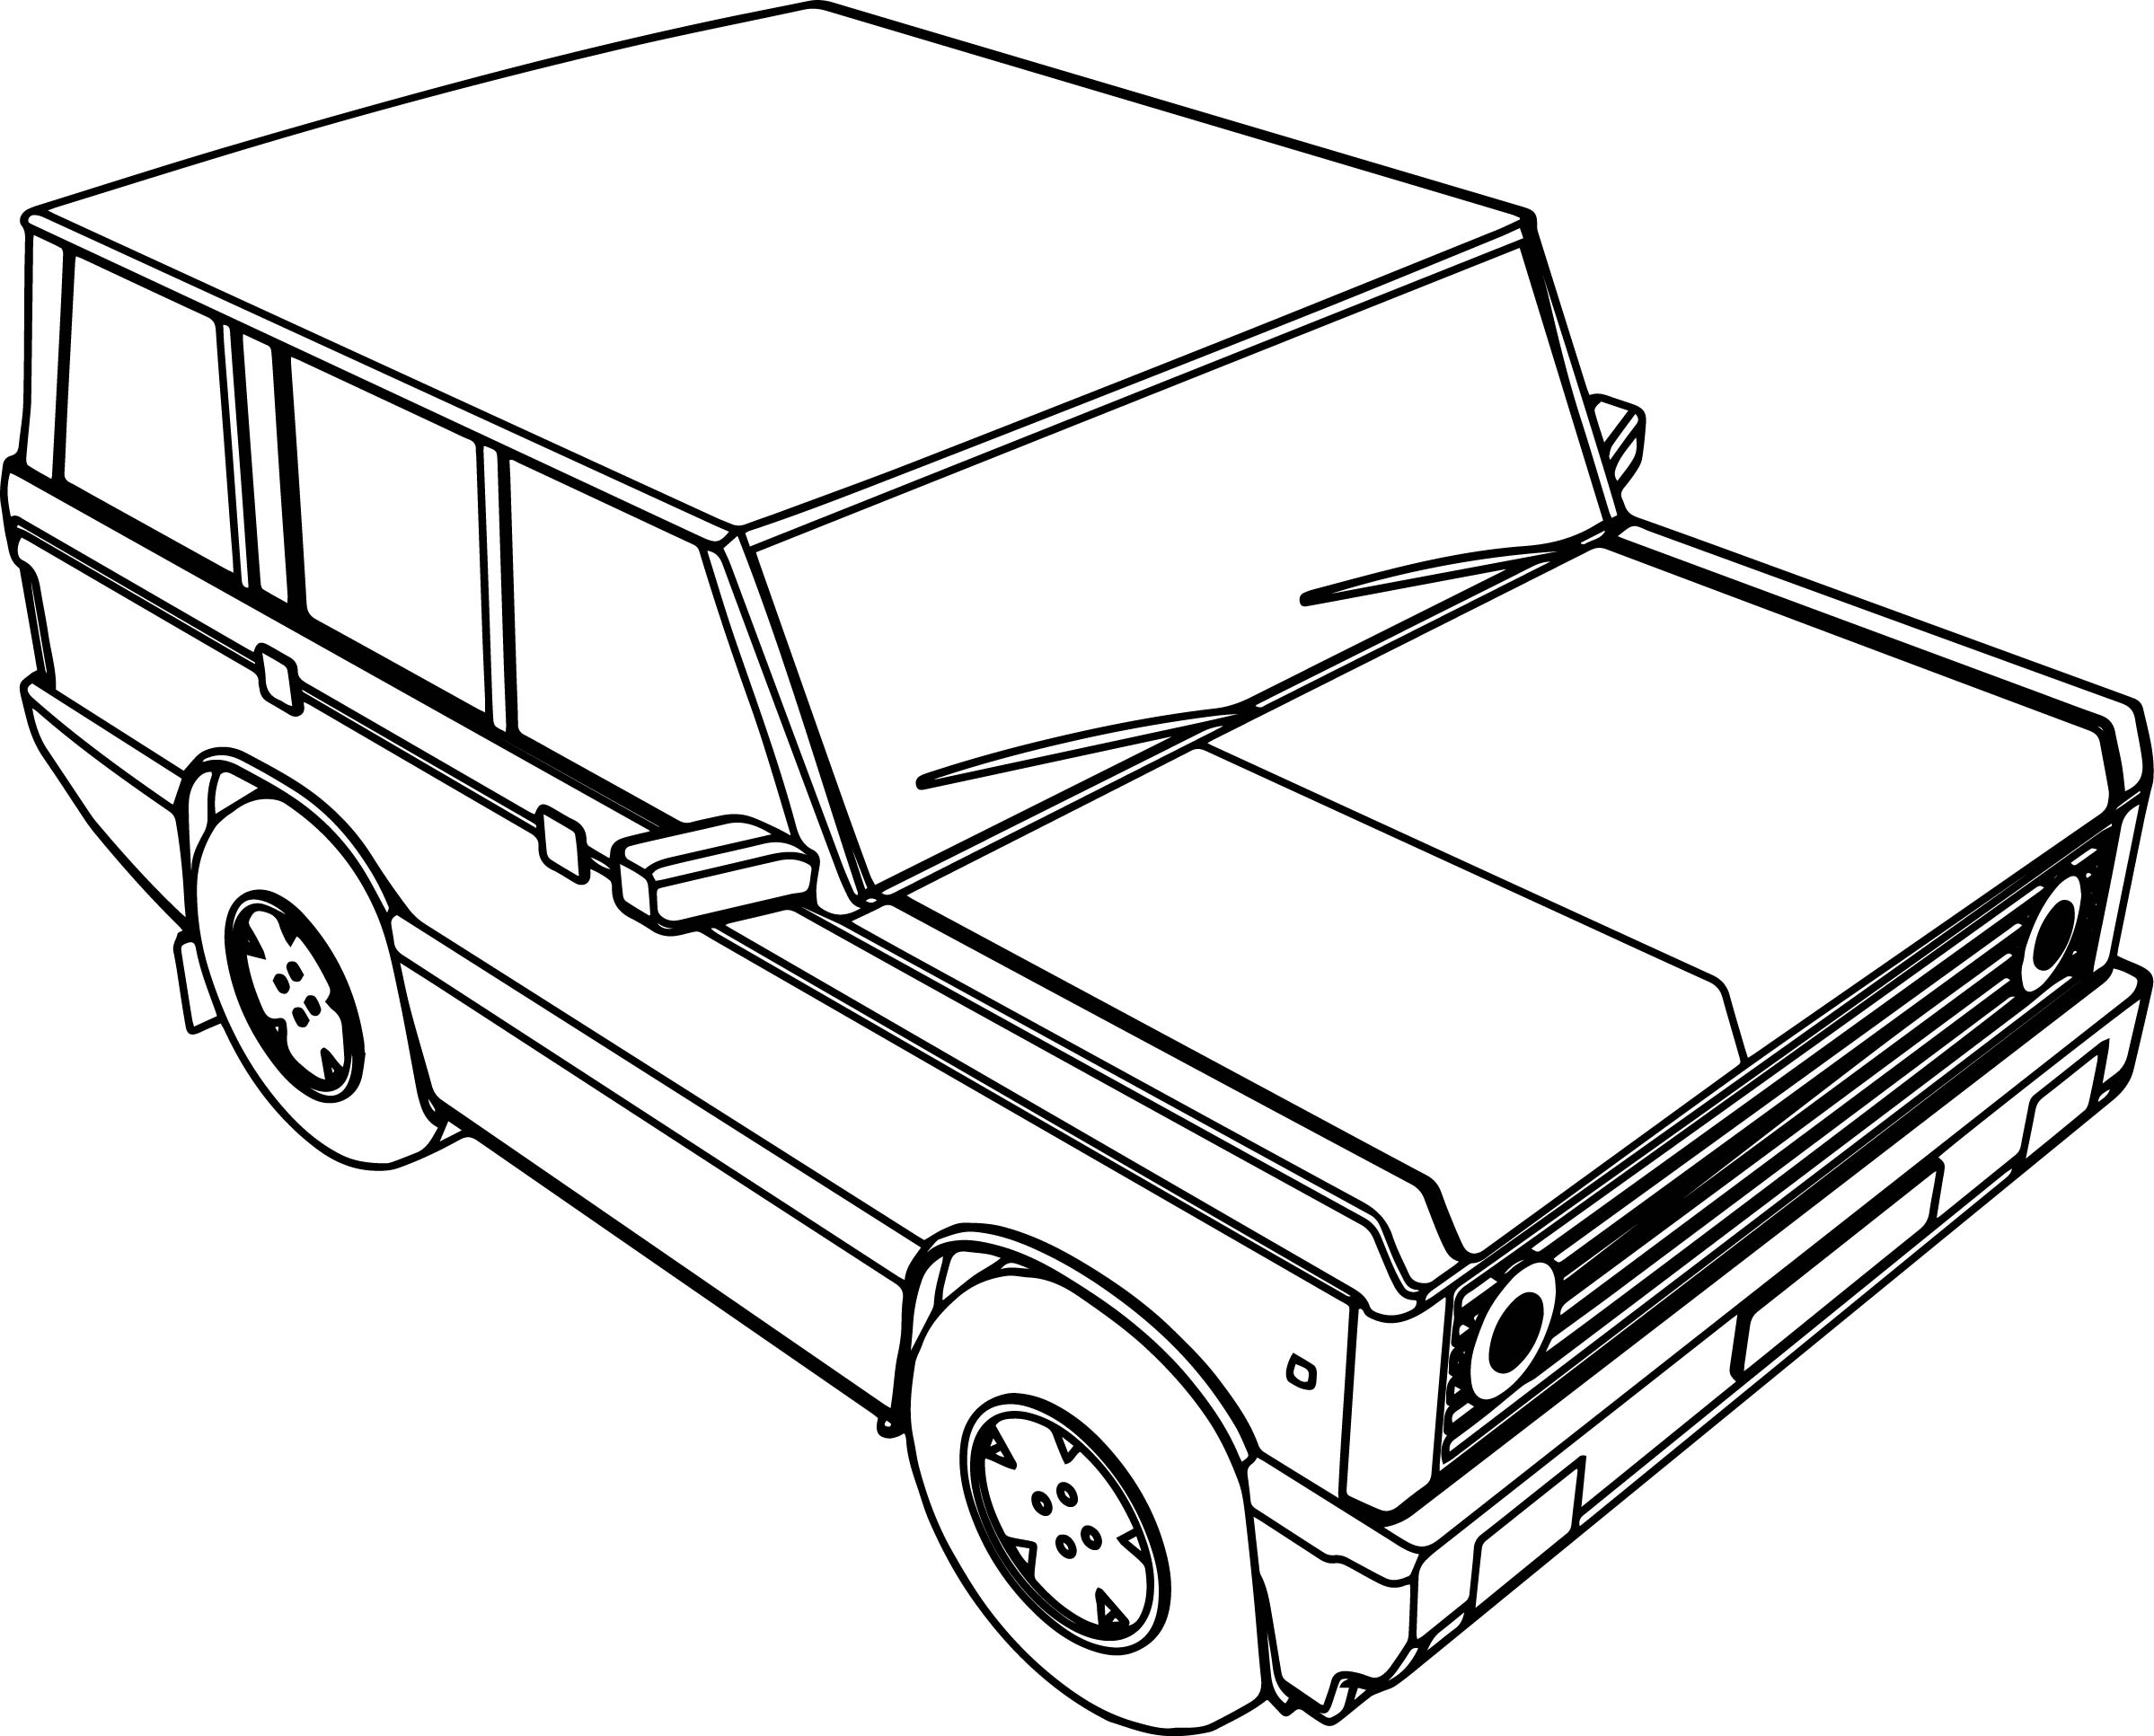 2398x1933 Simple Coloring Pages For Children Coloring Pages Pictures